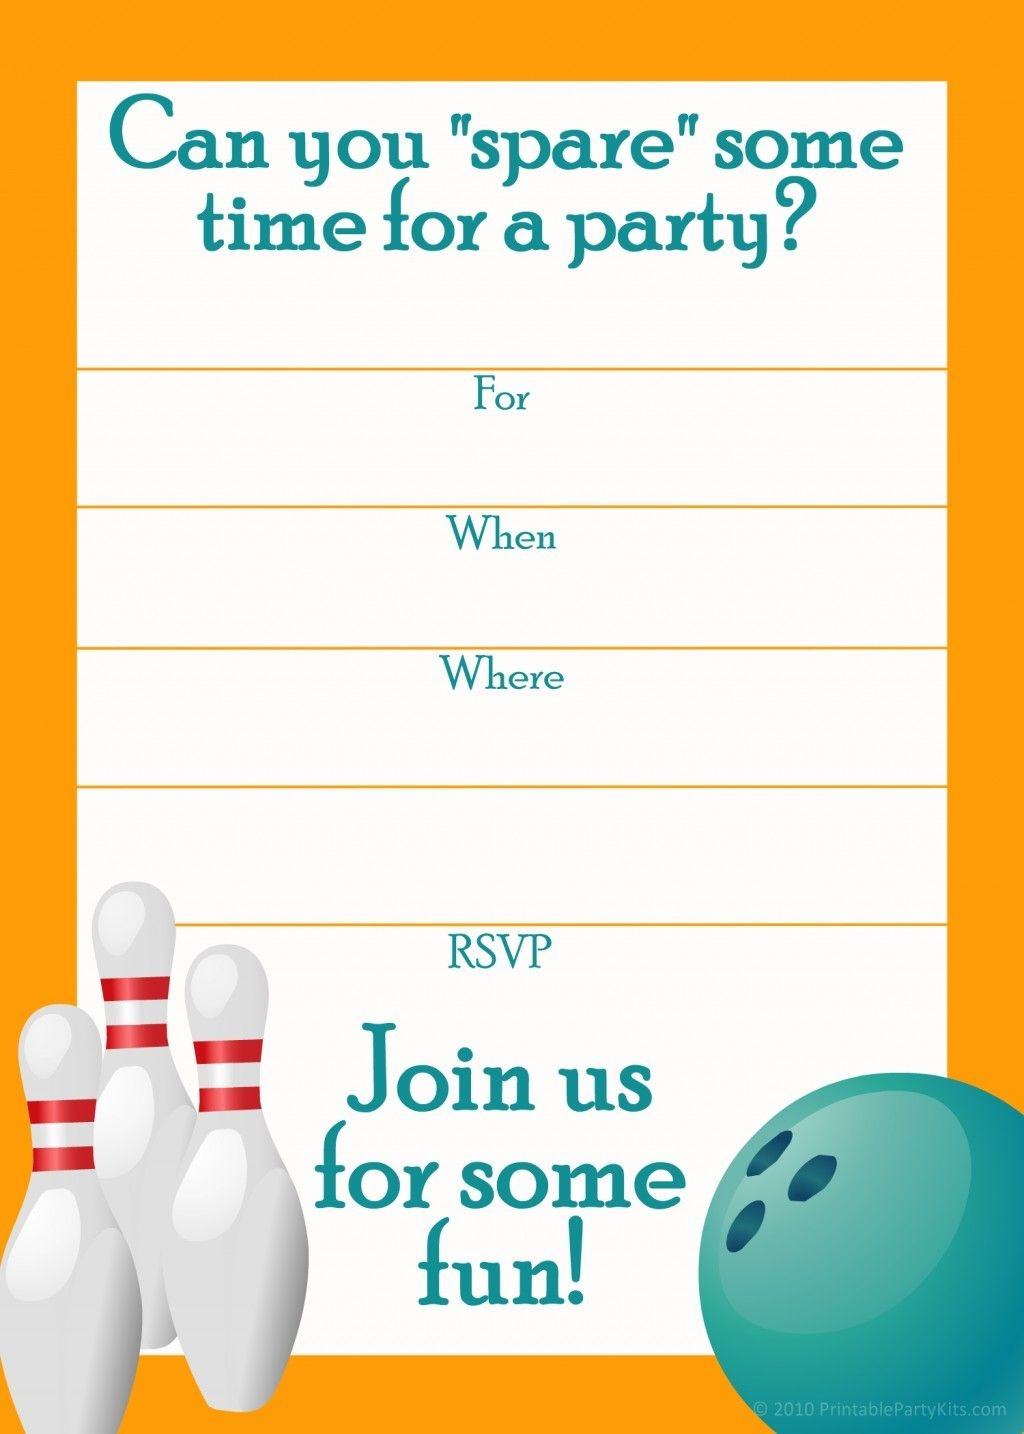 Free Printable Sports Birthday Party Invitations Templates | Dakota - Free Printable Sports Birthday Invitation Templates